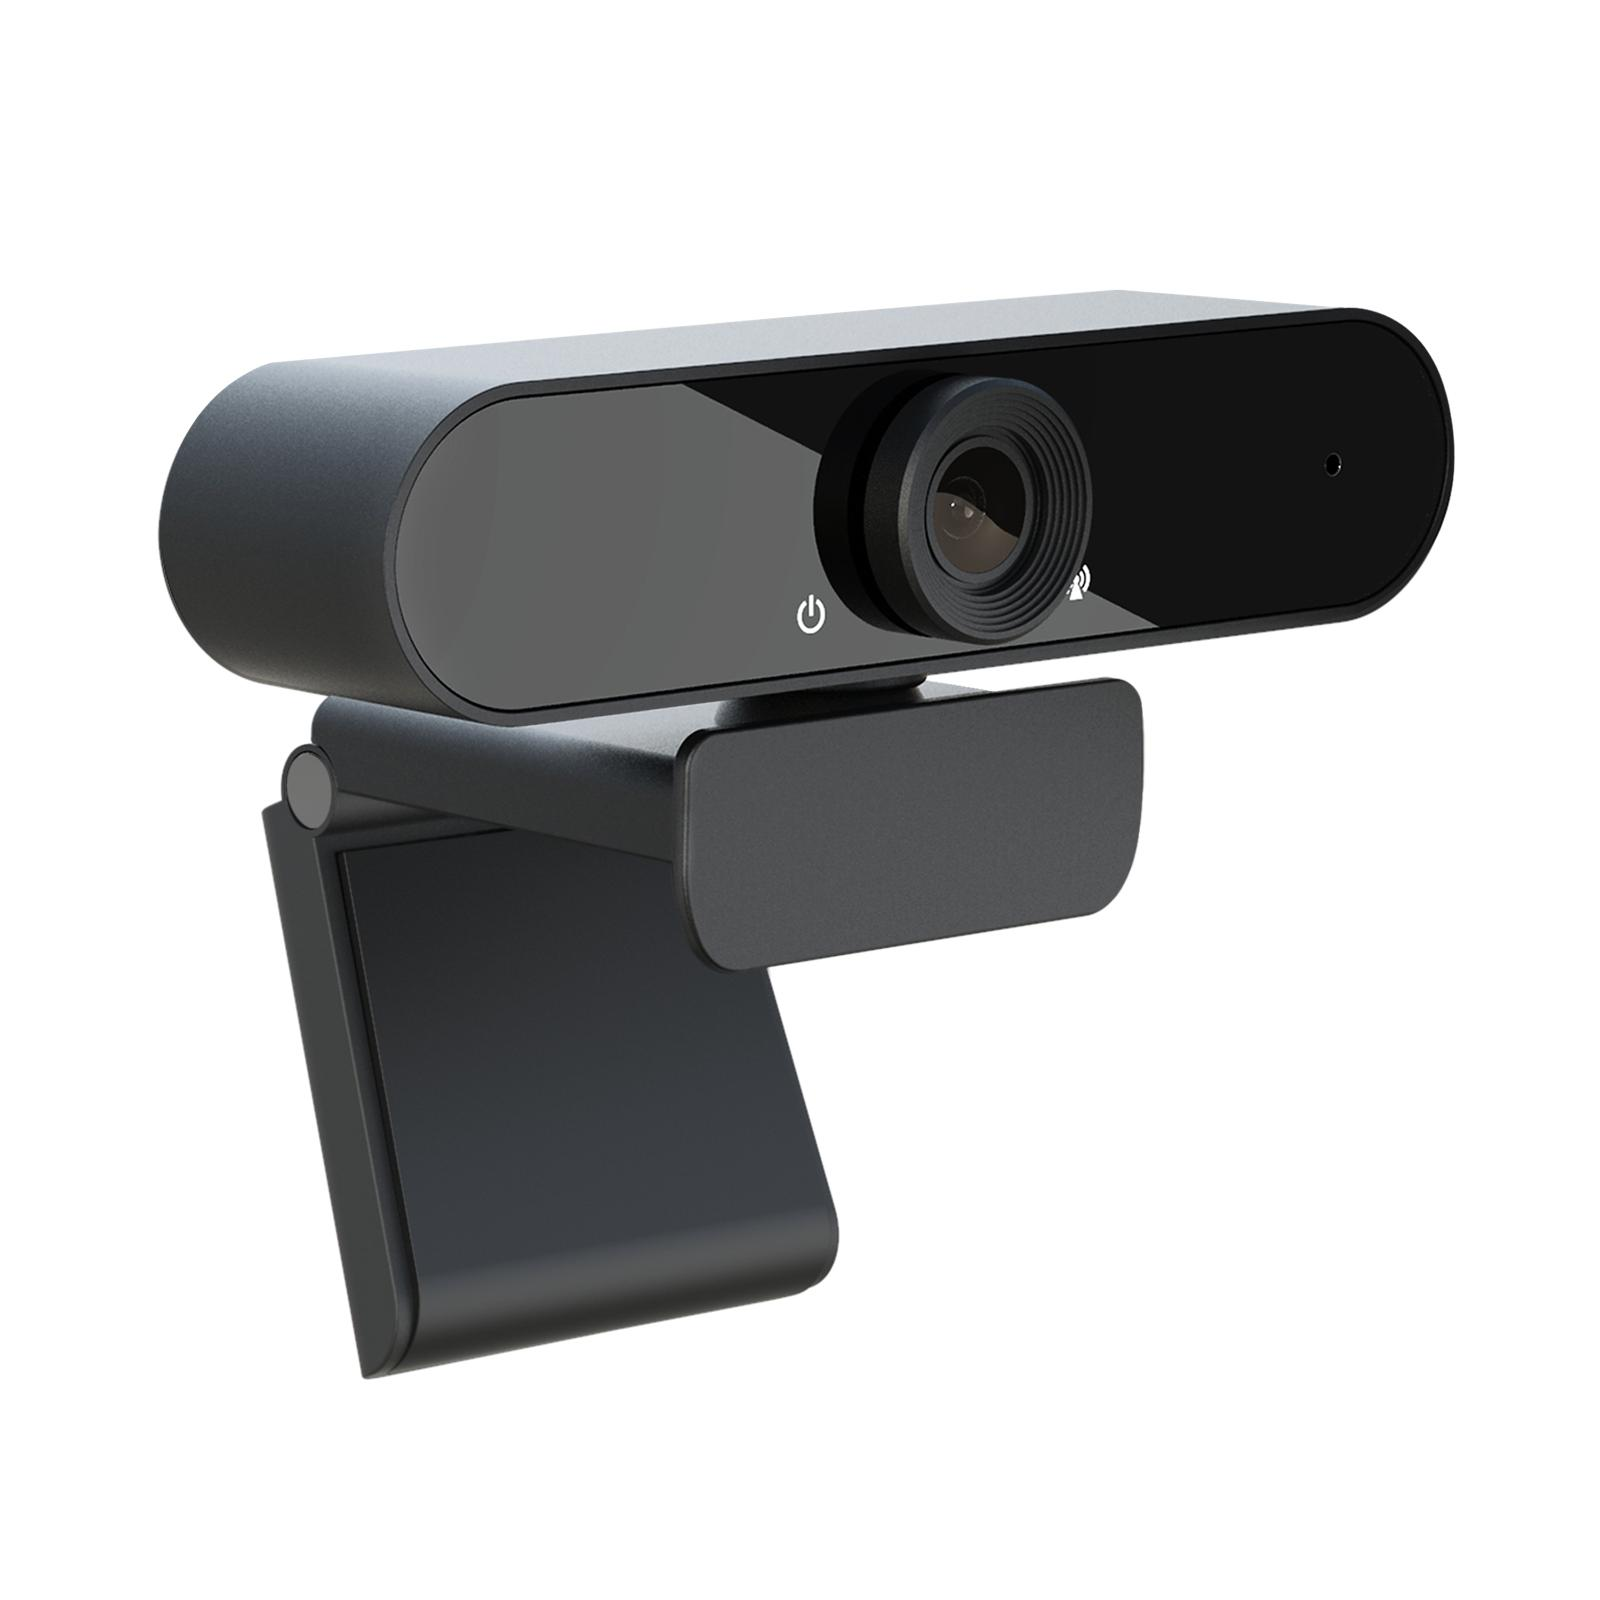 1080p webcam with microphone great for webinars